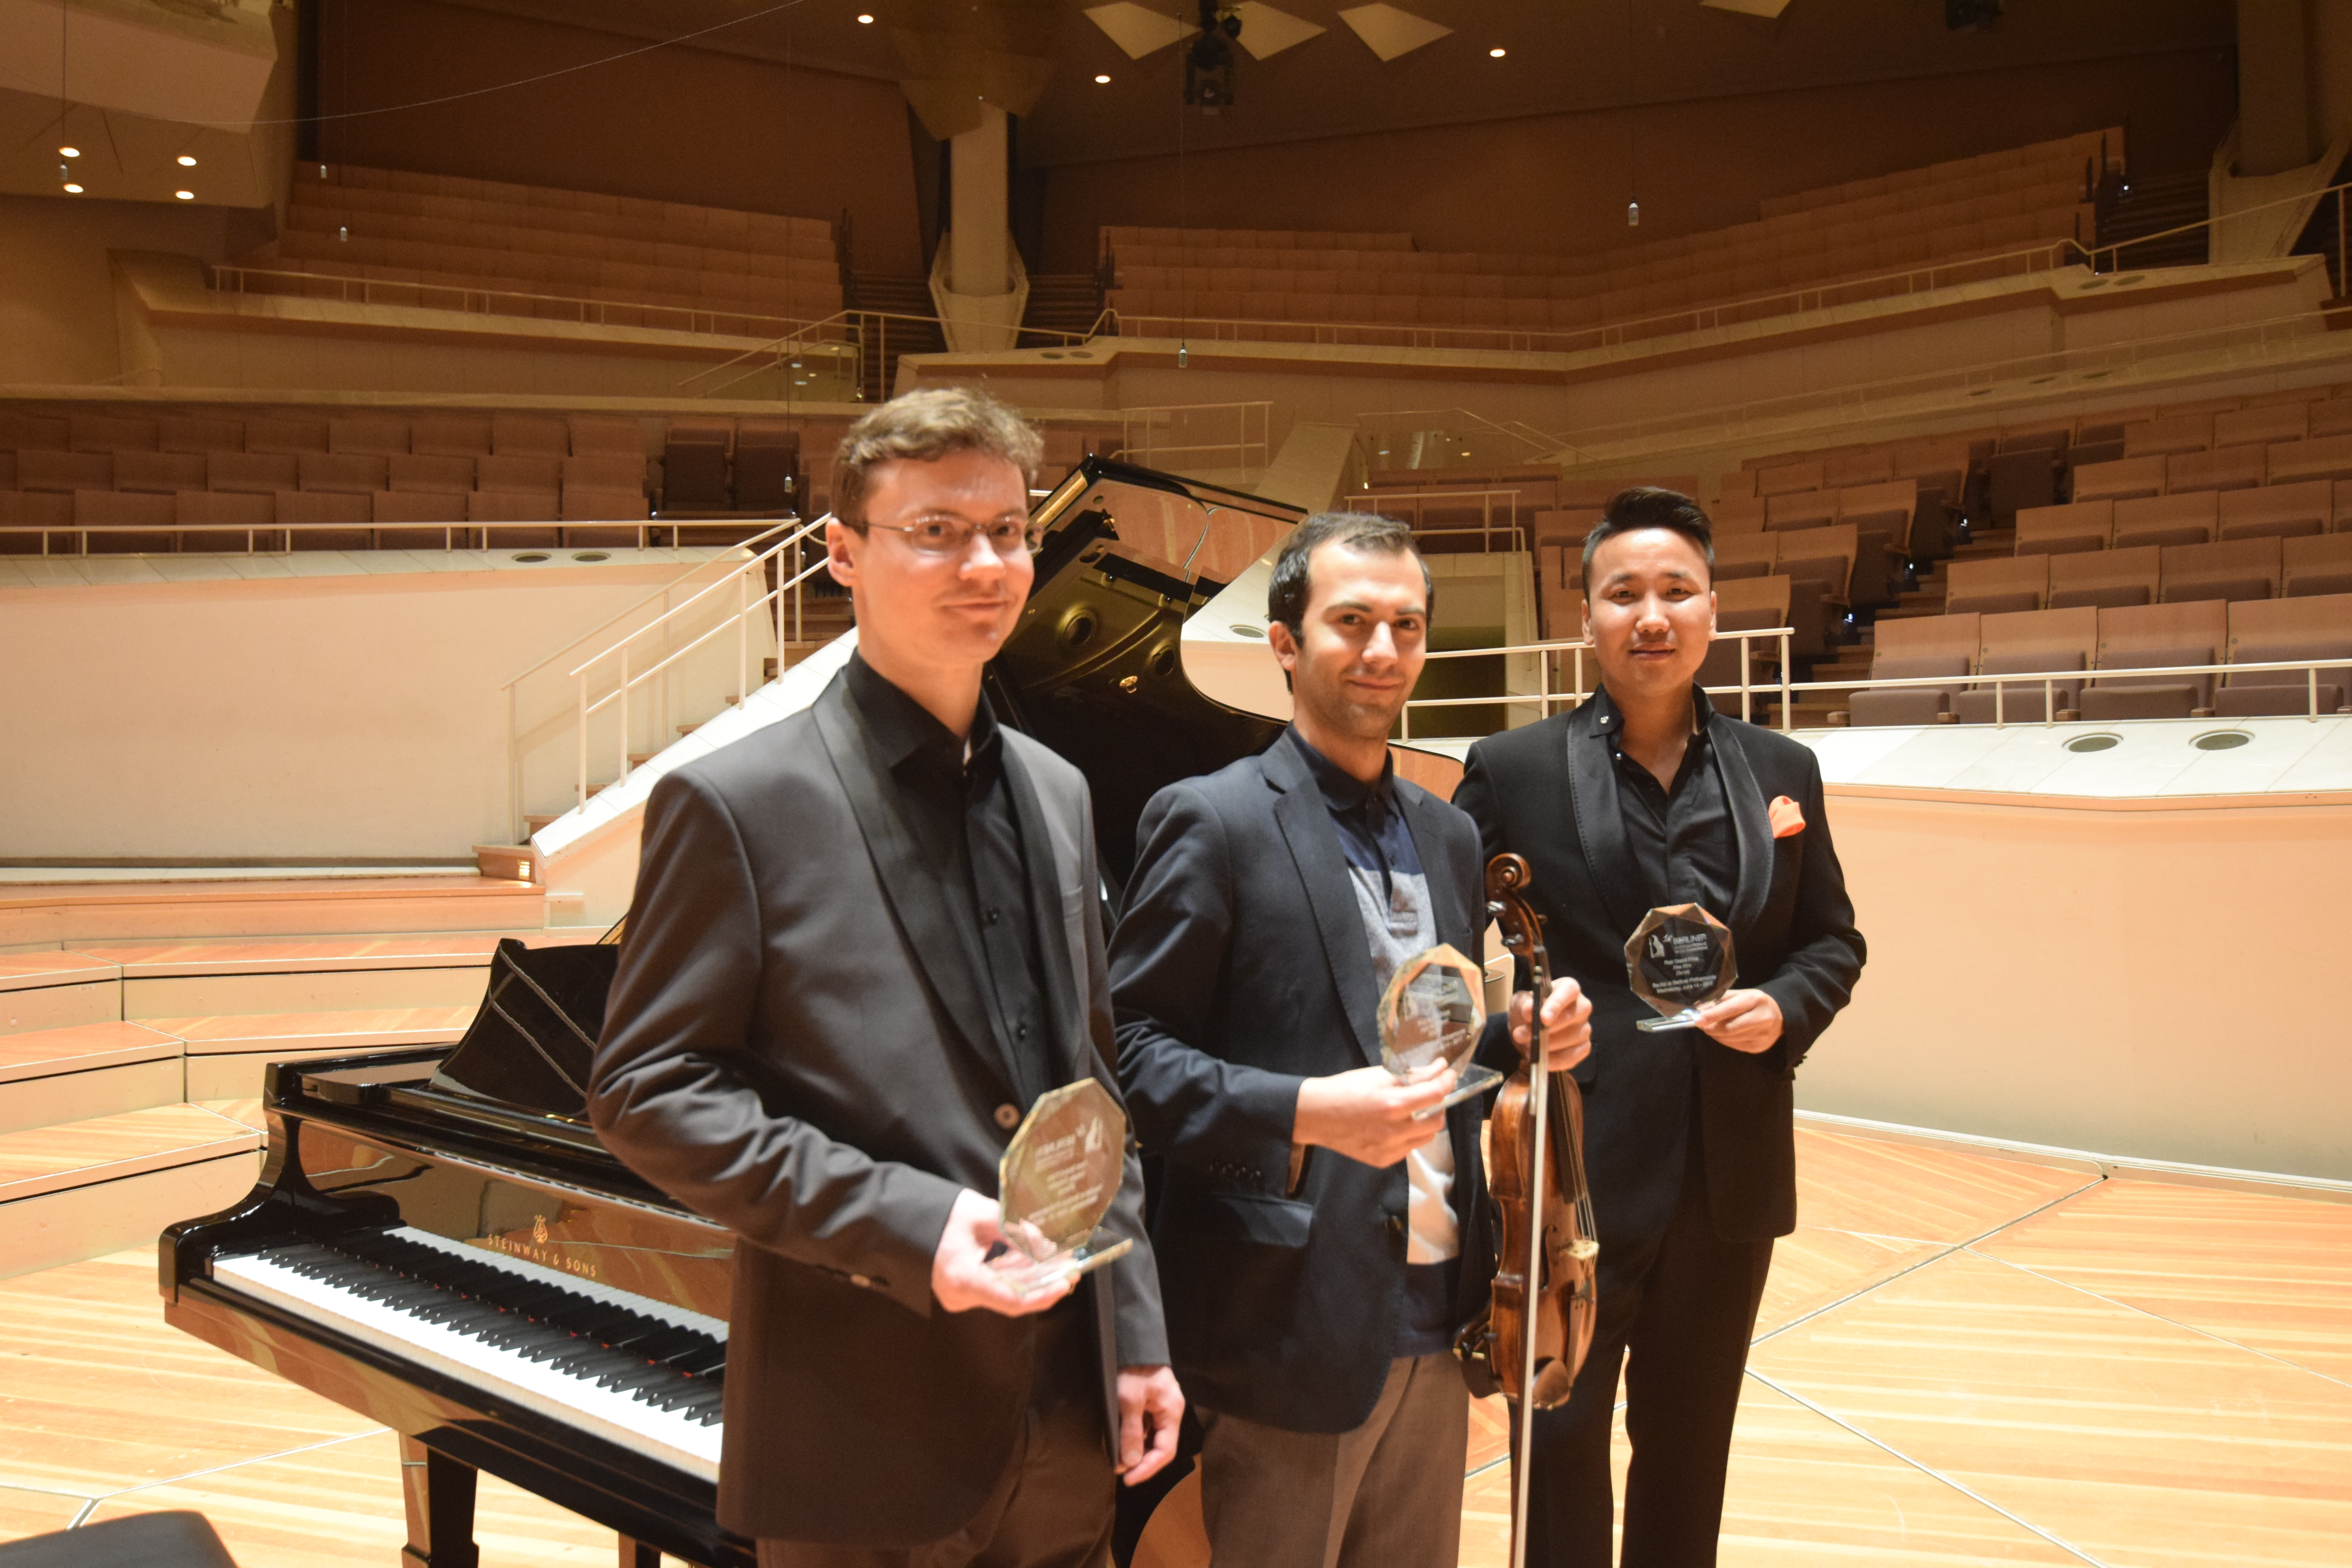 berliner music competition 70